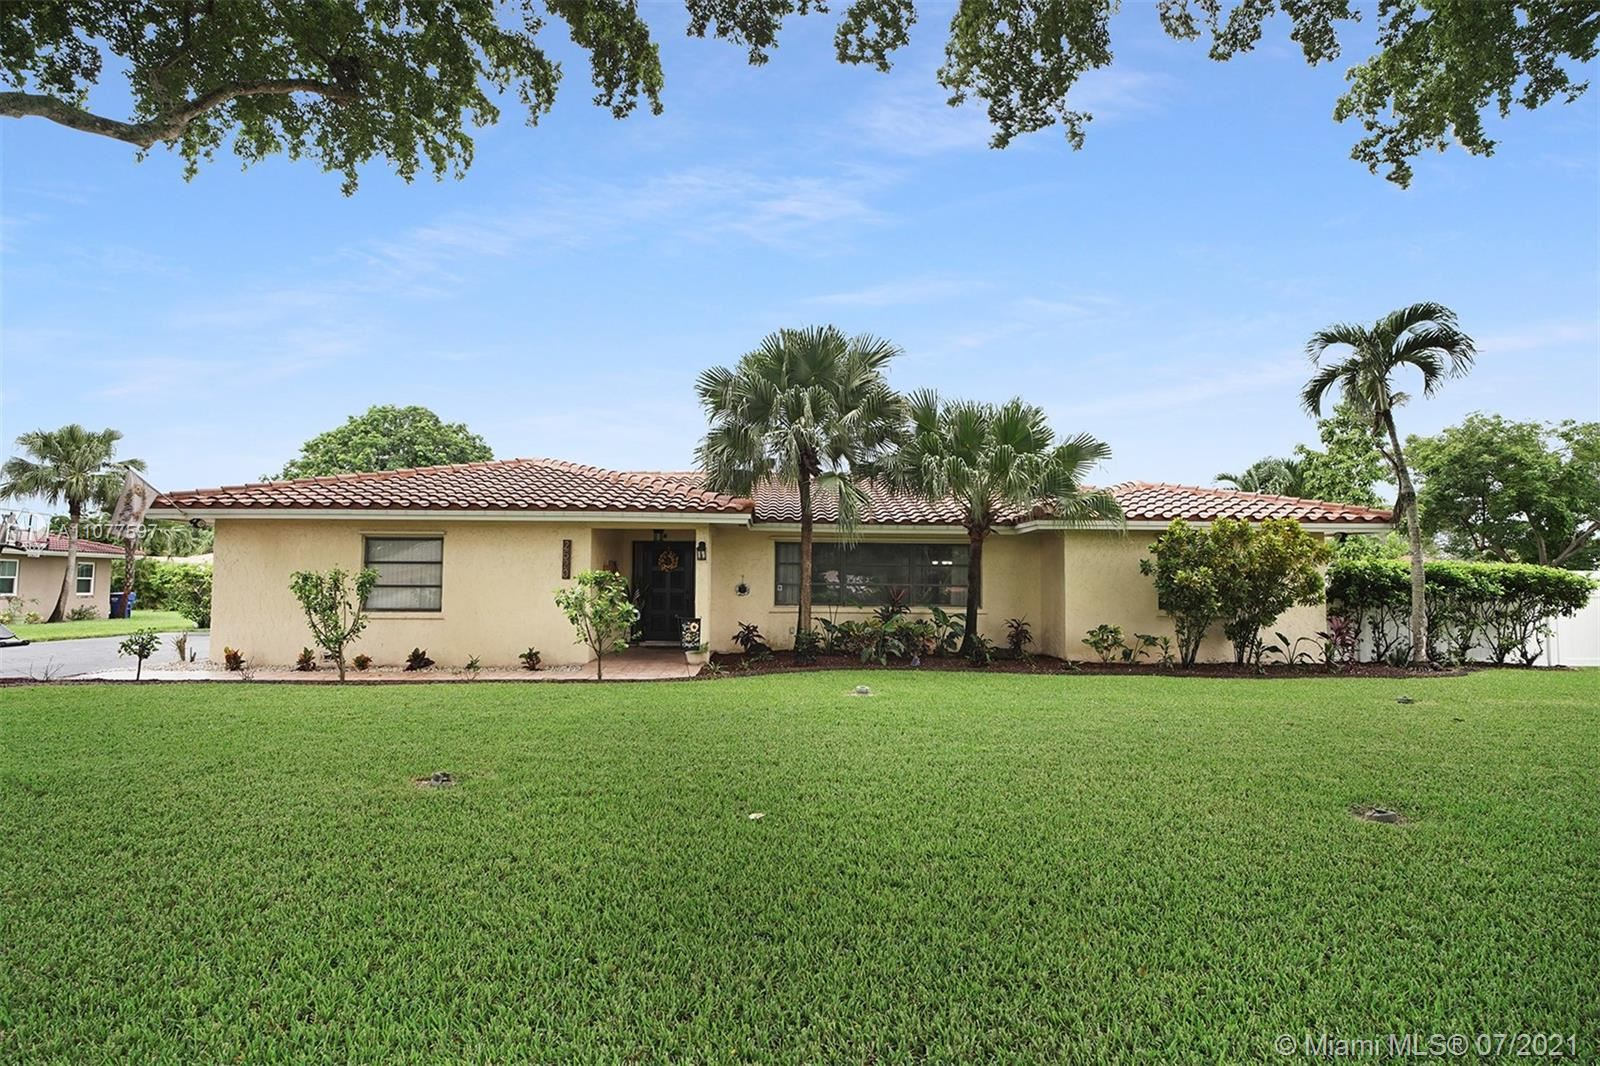 2520 NW 106th Ave, Coral Springs, FL 33065 - #: A11077597